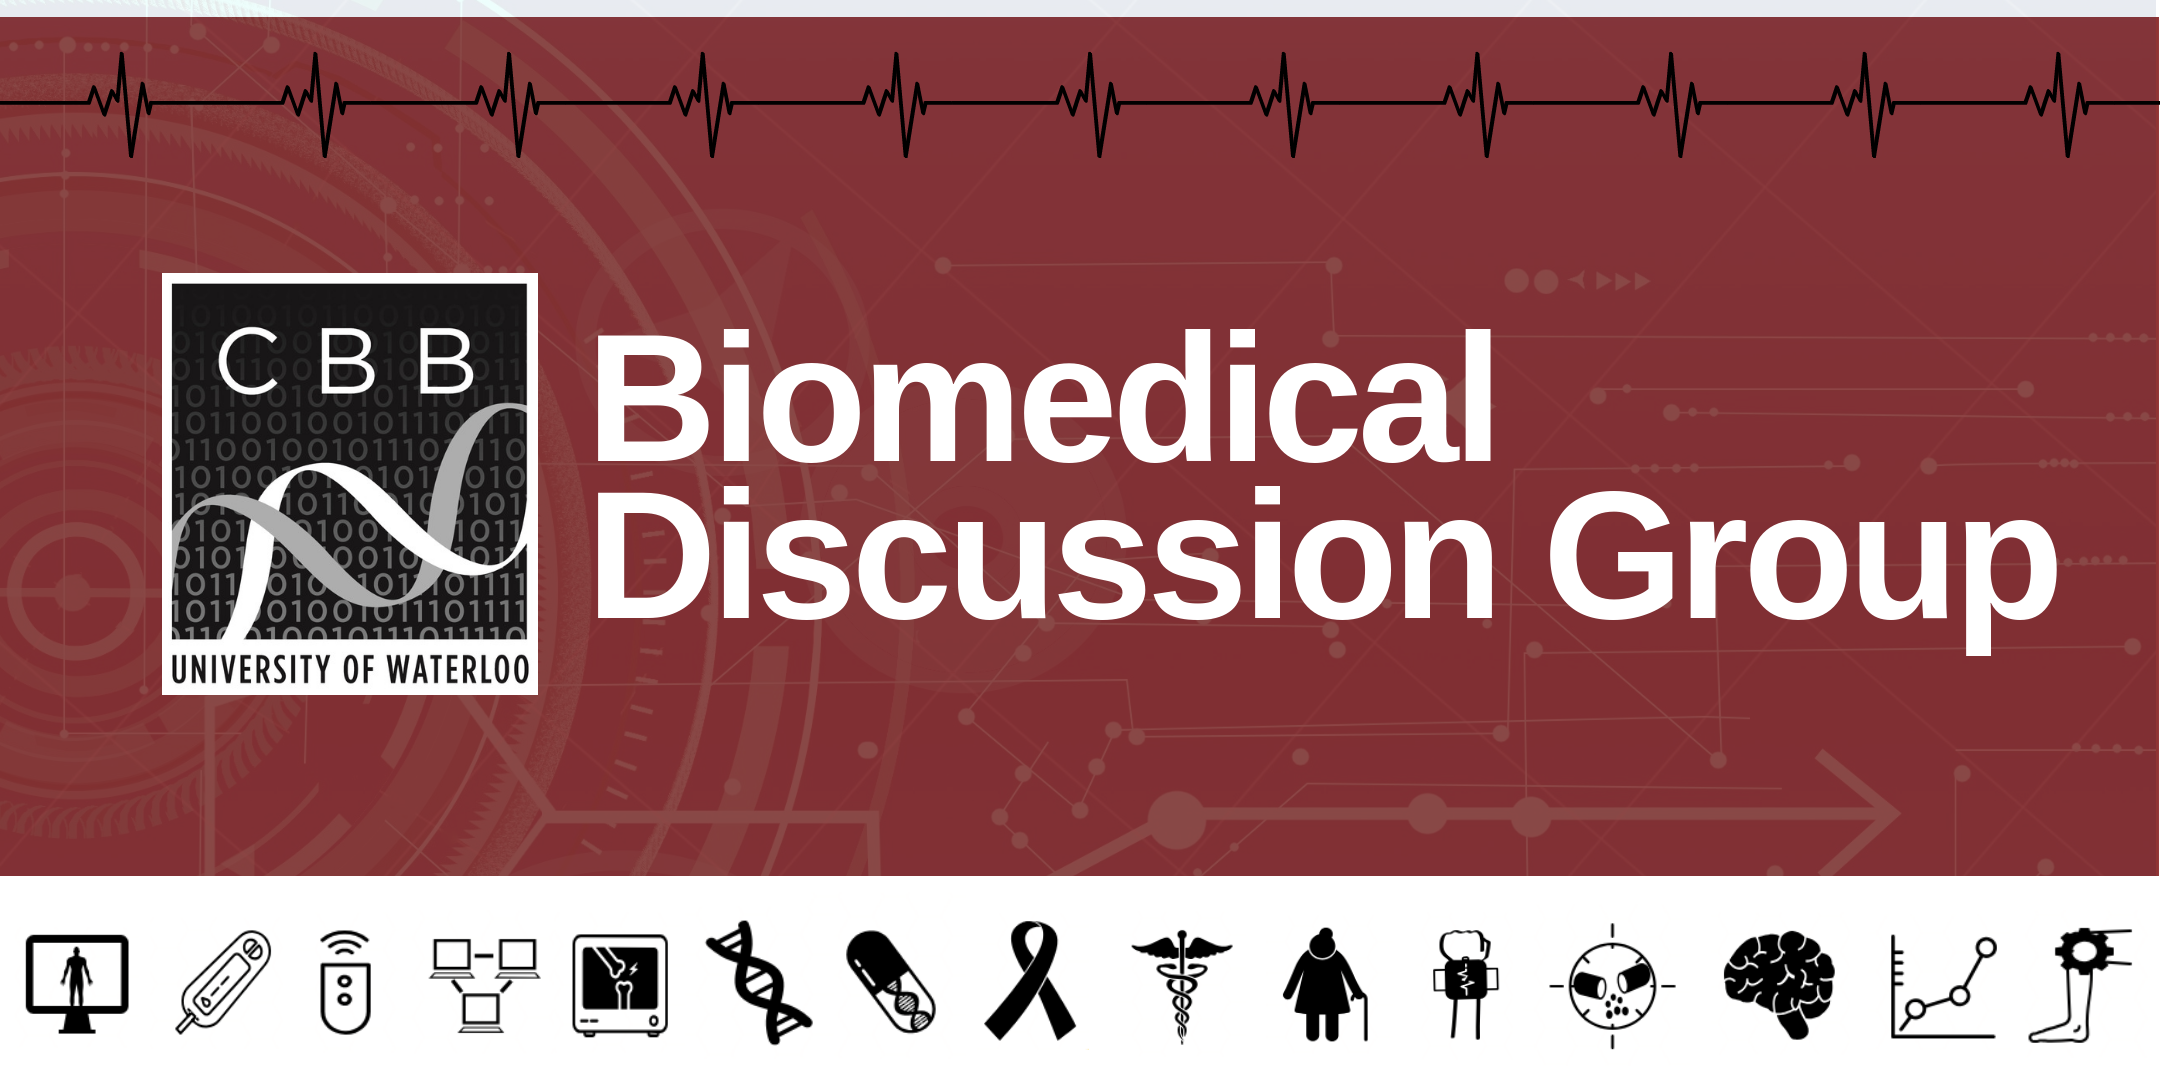 Biomedical Discussion Group